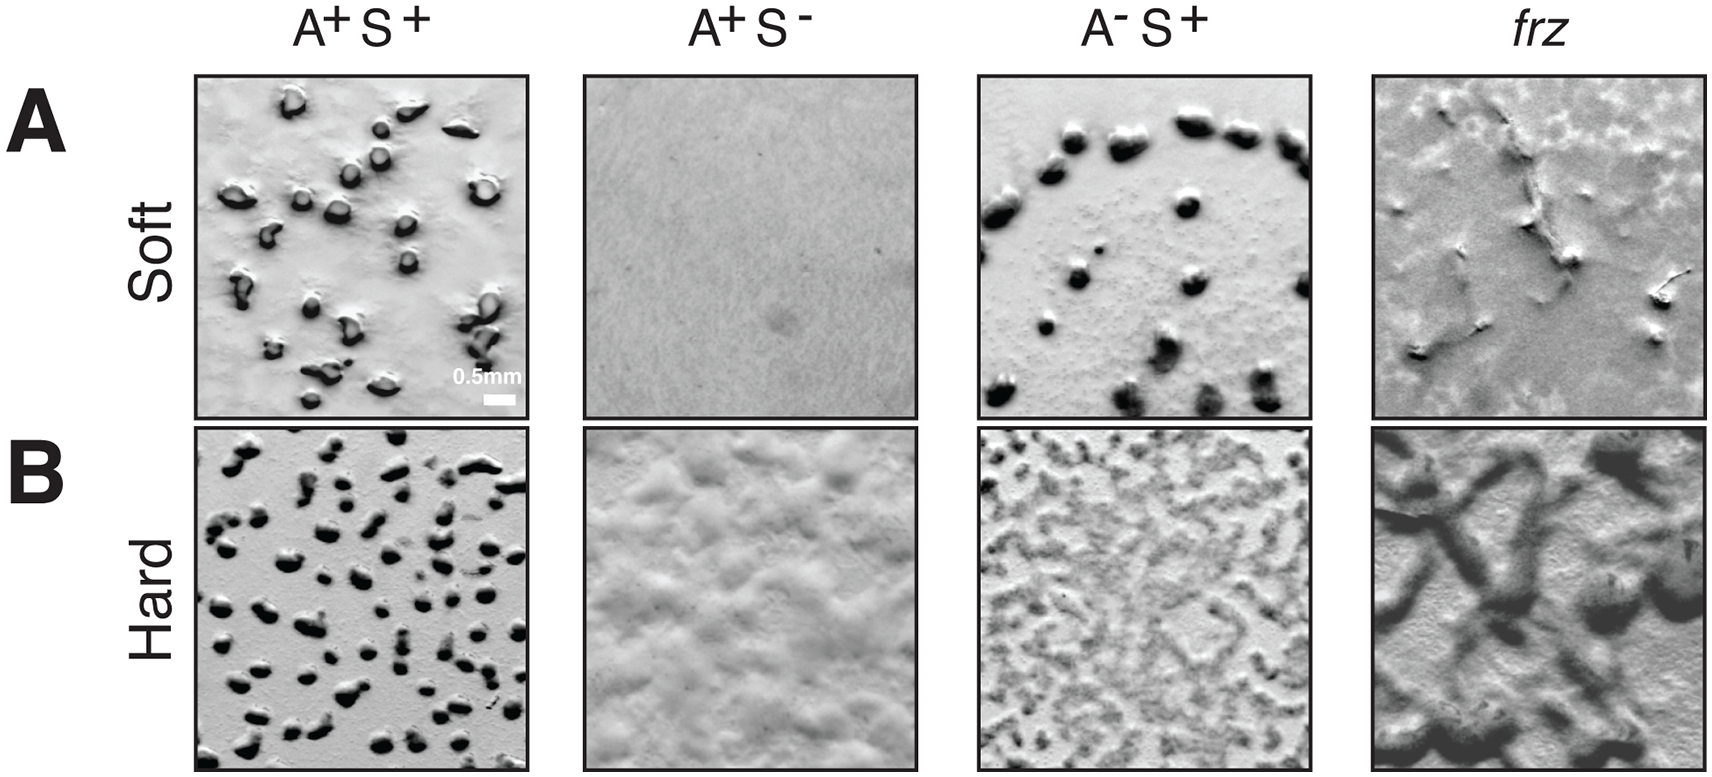 A- and S-motility diversify the repertoire of <i>Myxococcus</i> multicellular behaviors.